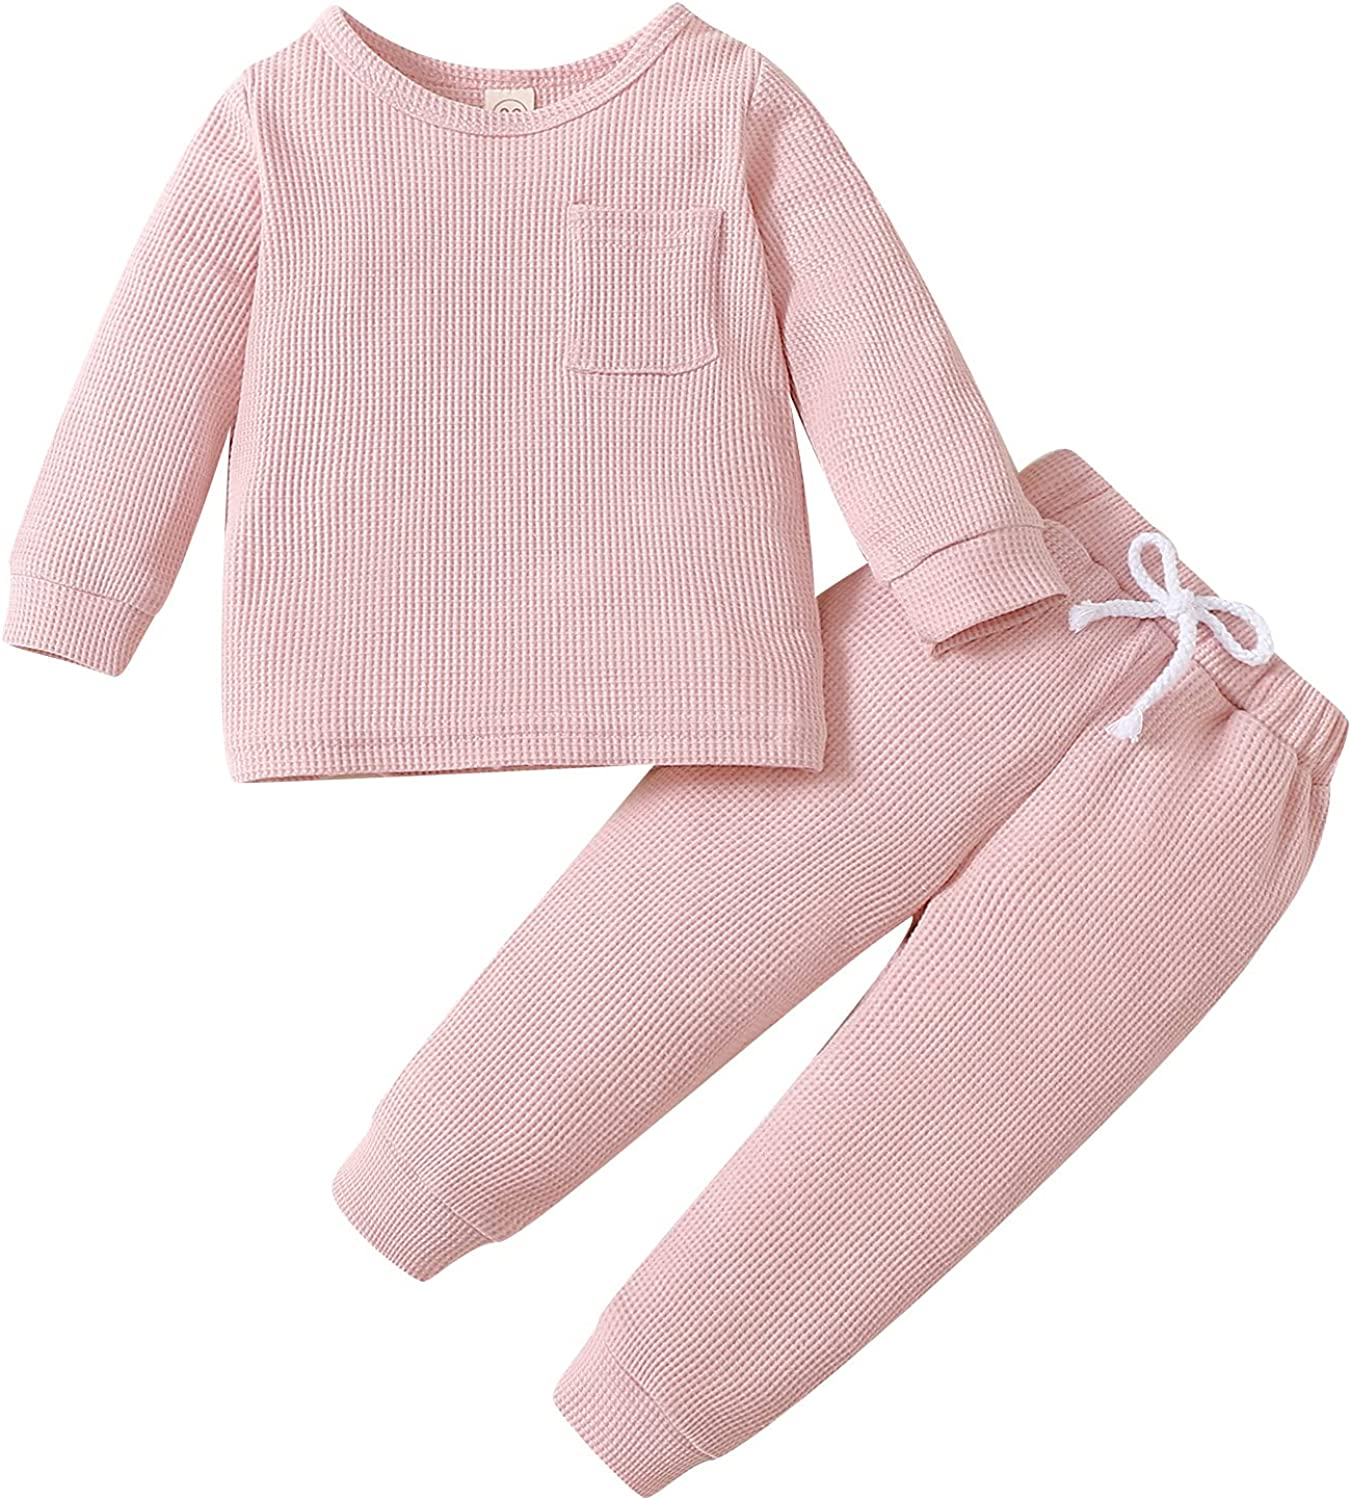 DBZoo Toddler Baby Boy Girl Unisex Clothes Sets Long Sleeve Crew Neck T-Shirt Tops and Pants Fall Winter Solid Outfits